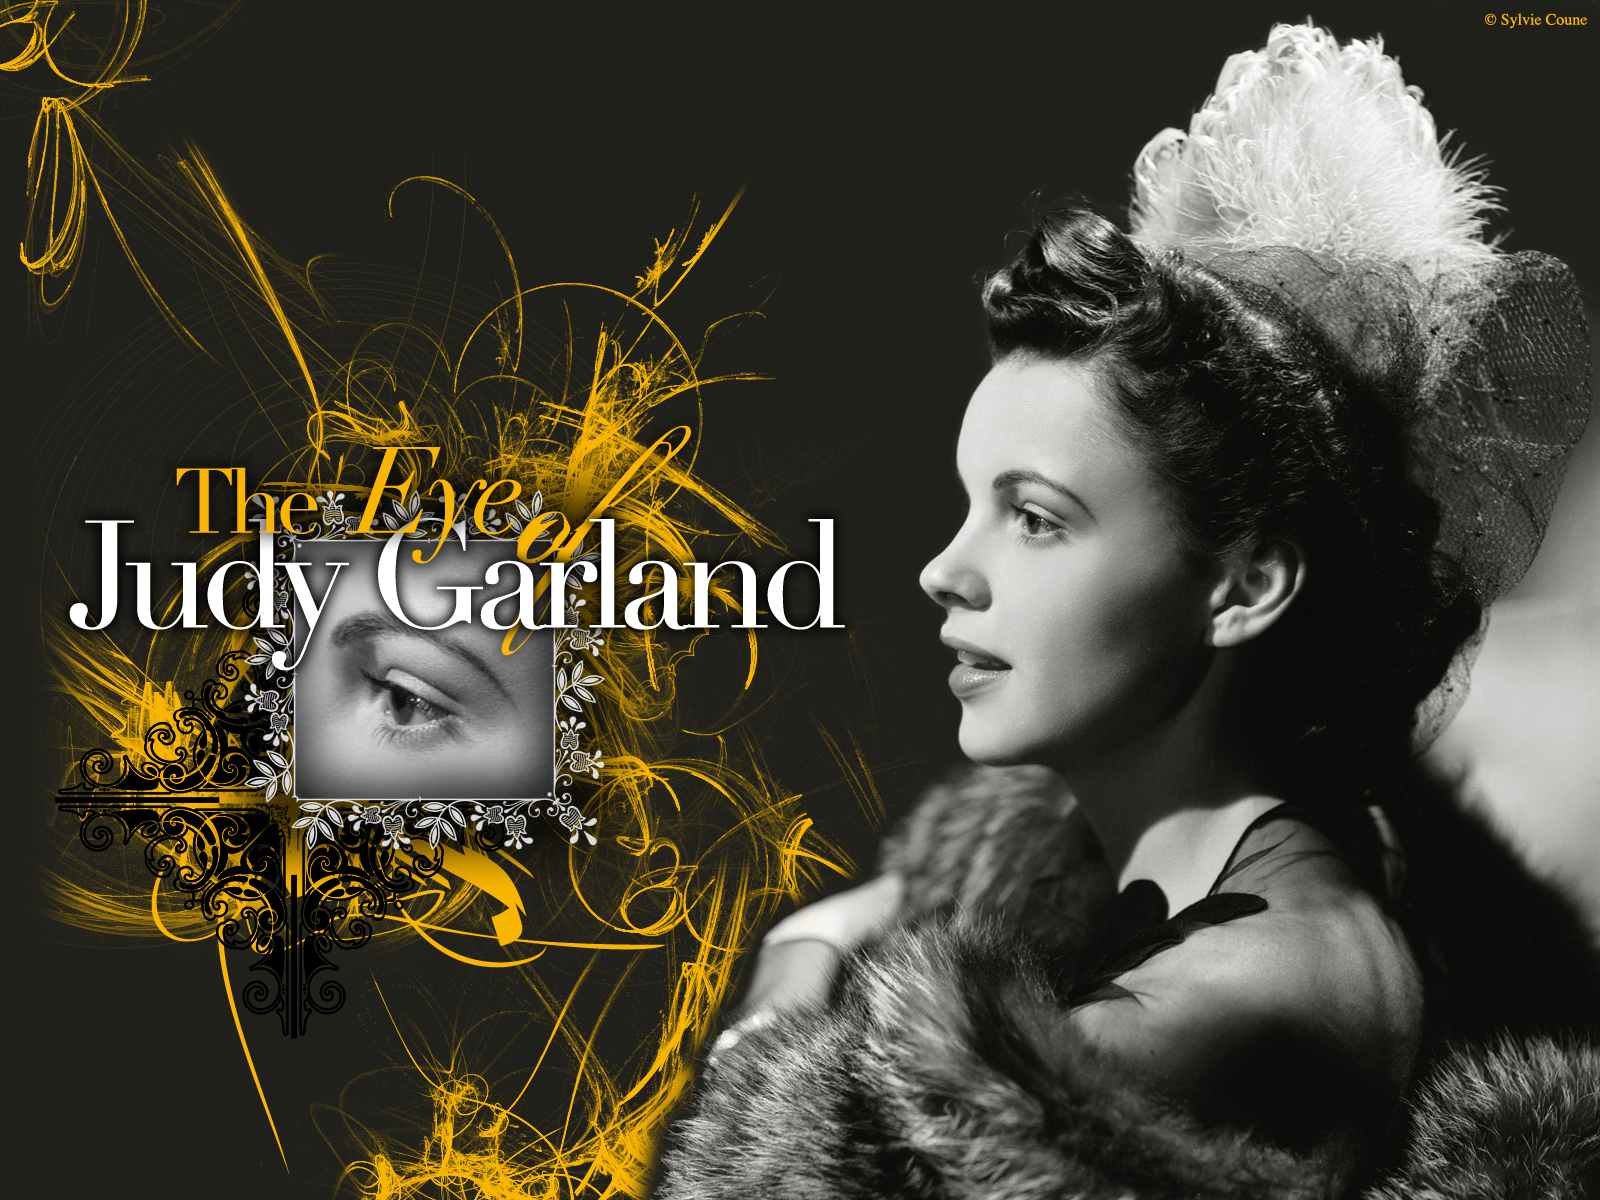 Judy Garland - Judy Garland Wallpaper (3780110) - Fanpop